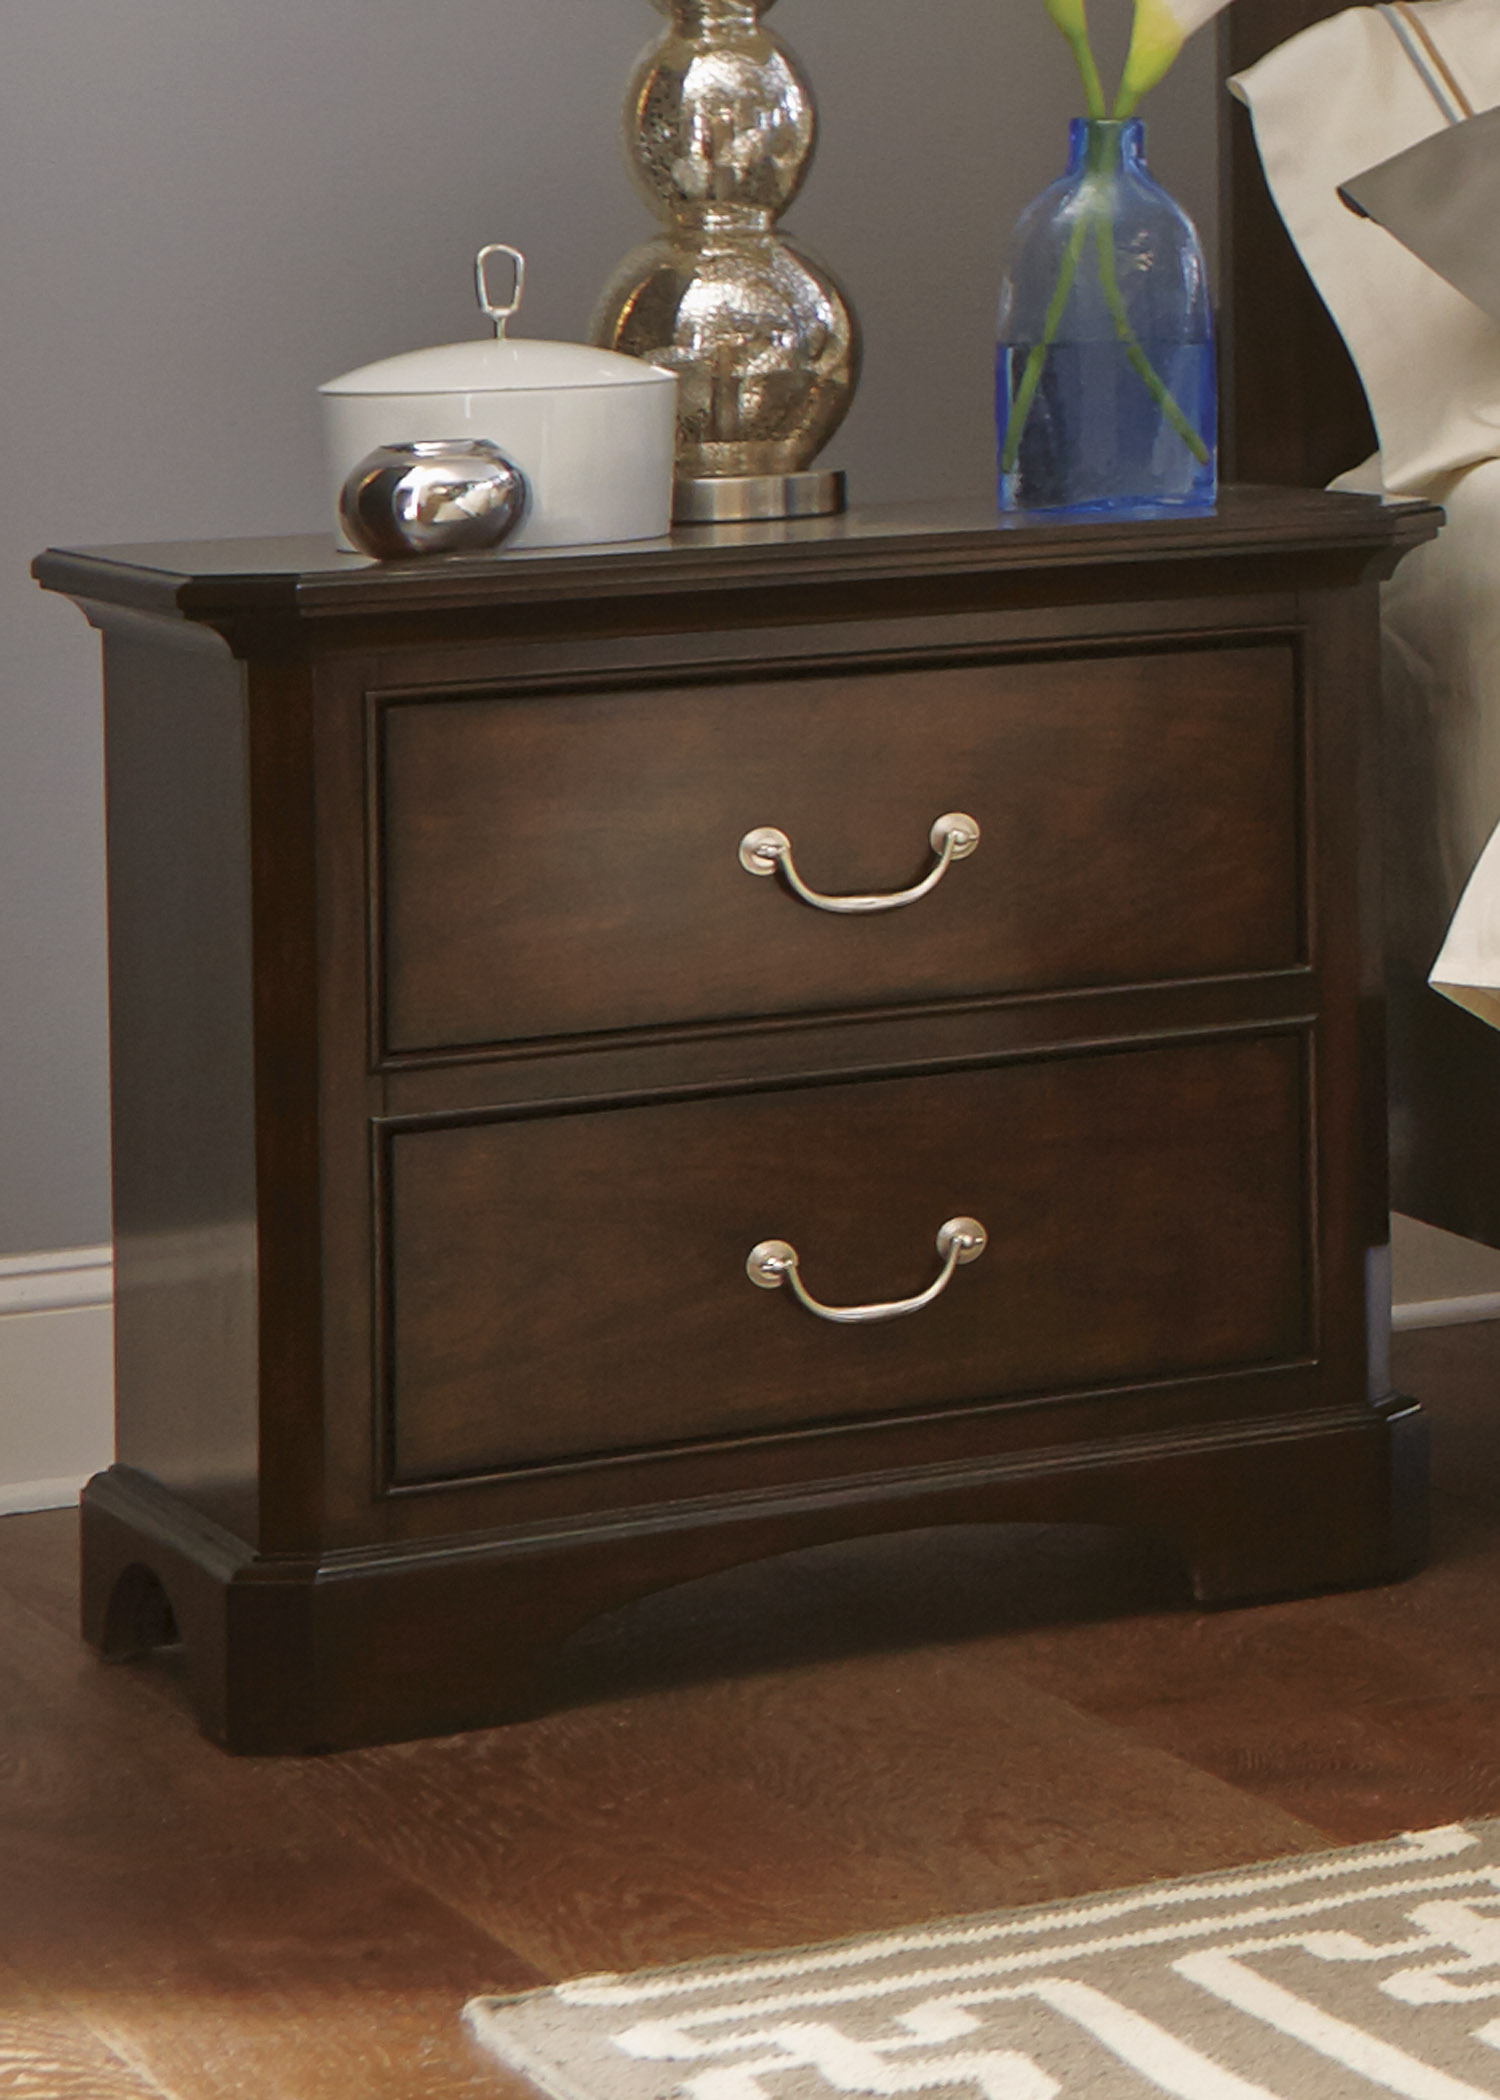 Liberty Furniture Avington 2-Drawer Night Stand - Item Number: 172-BR61